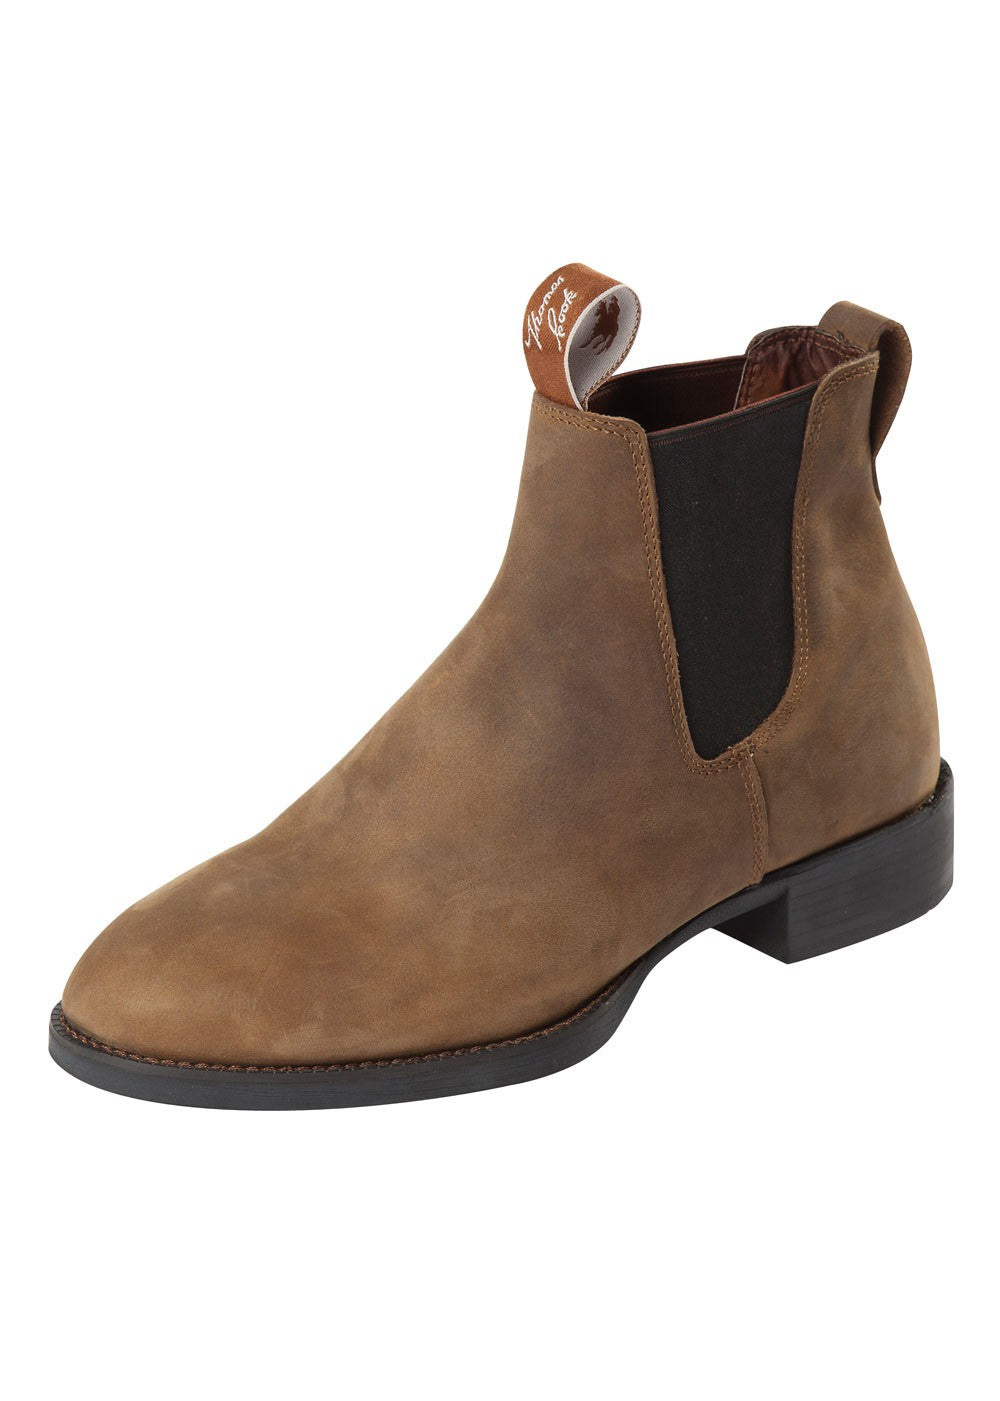 Thomas Cook | Mens | Boots | Thomas | Elastic Sided | All Rounder - BK8 Outfitters Australia